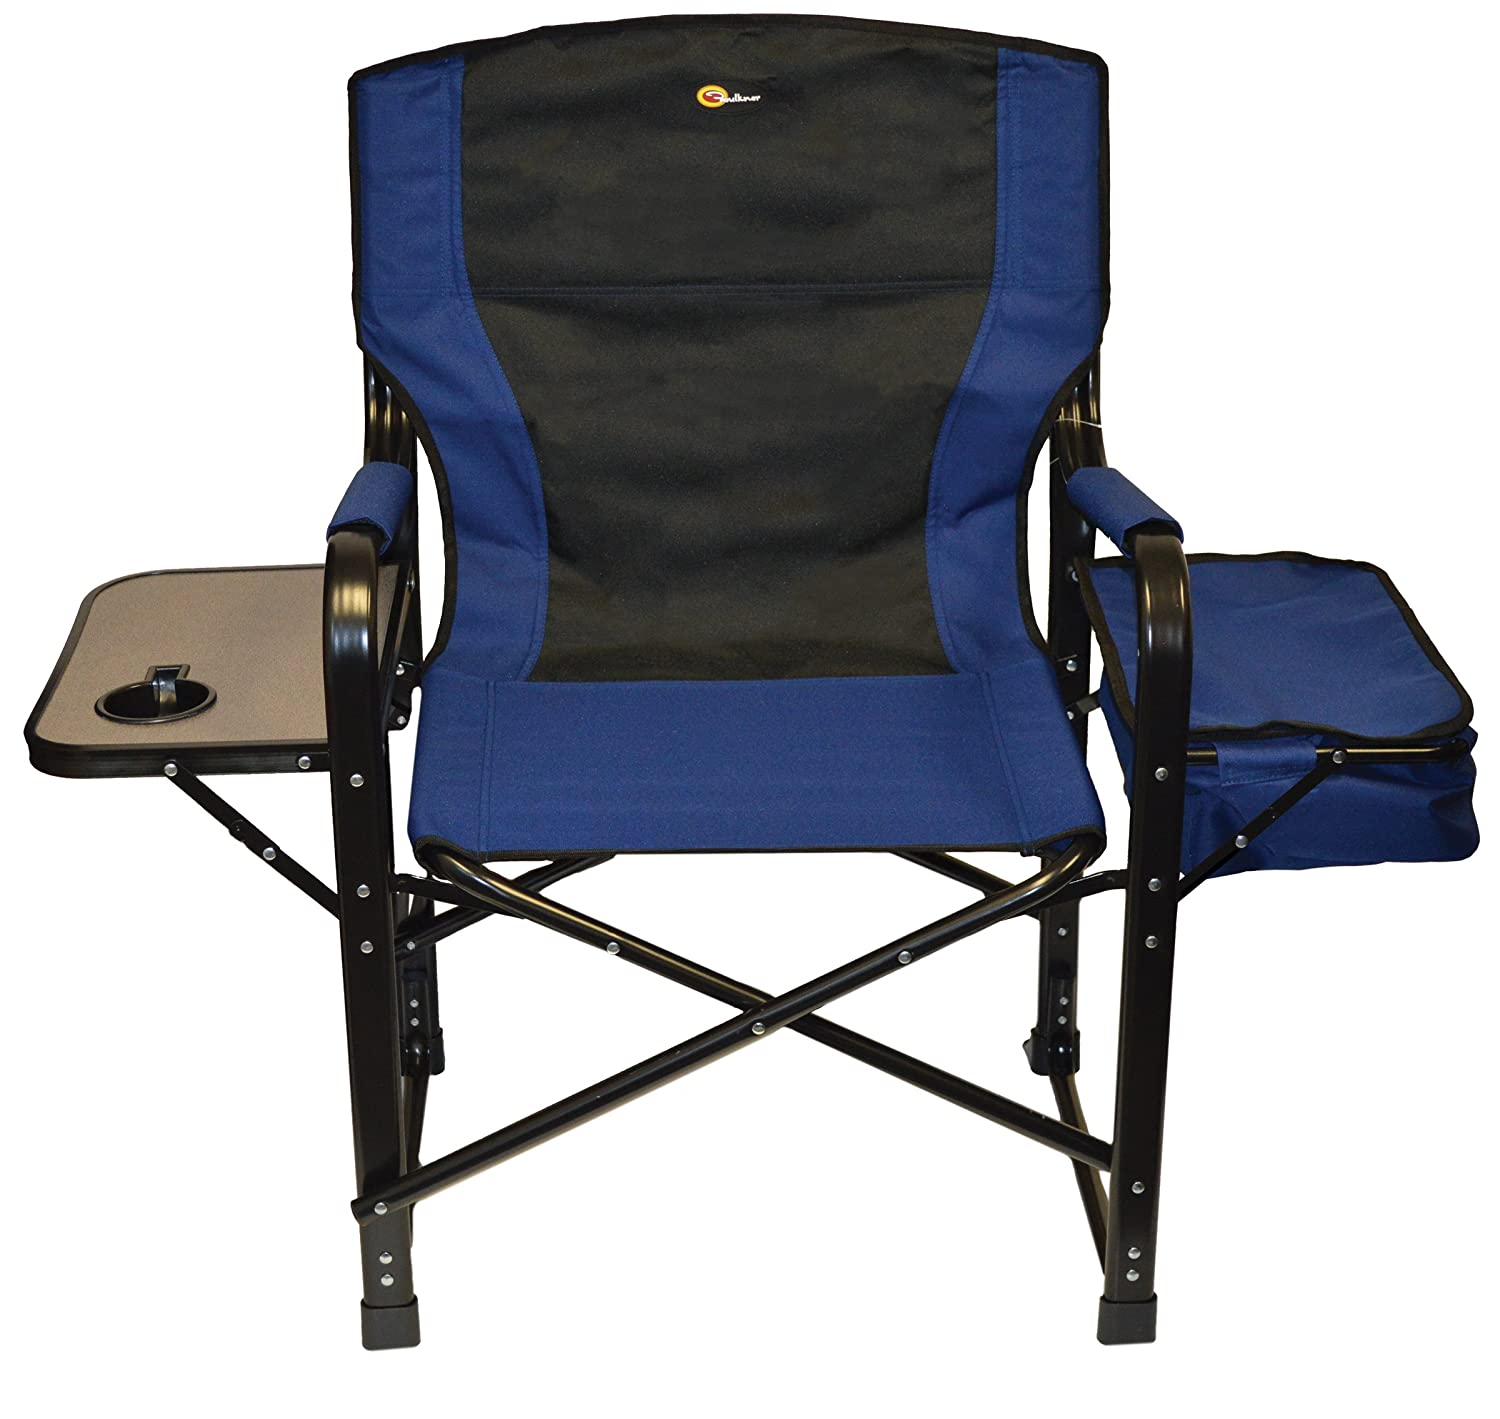 Faulkner 49581 El Capitan Folding Director Chair with Tray and Cooler Bag, Blue Black